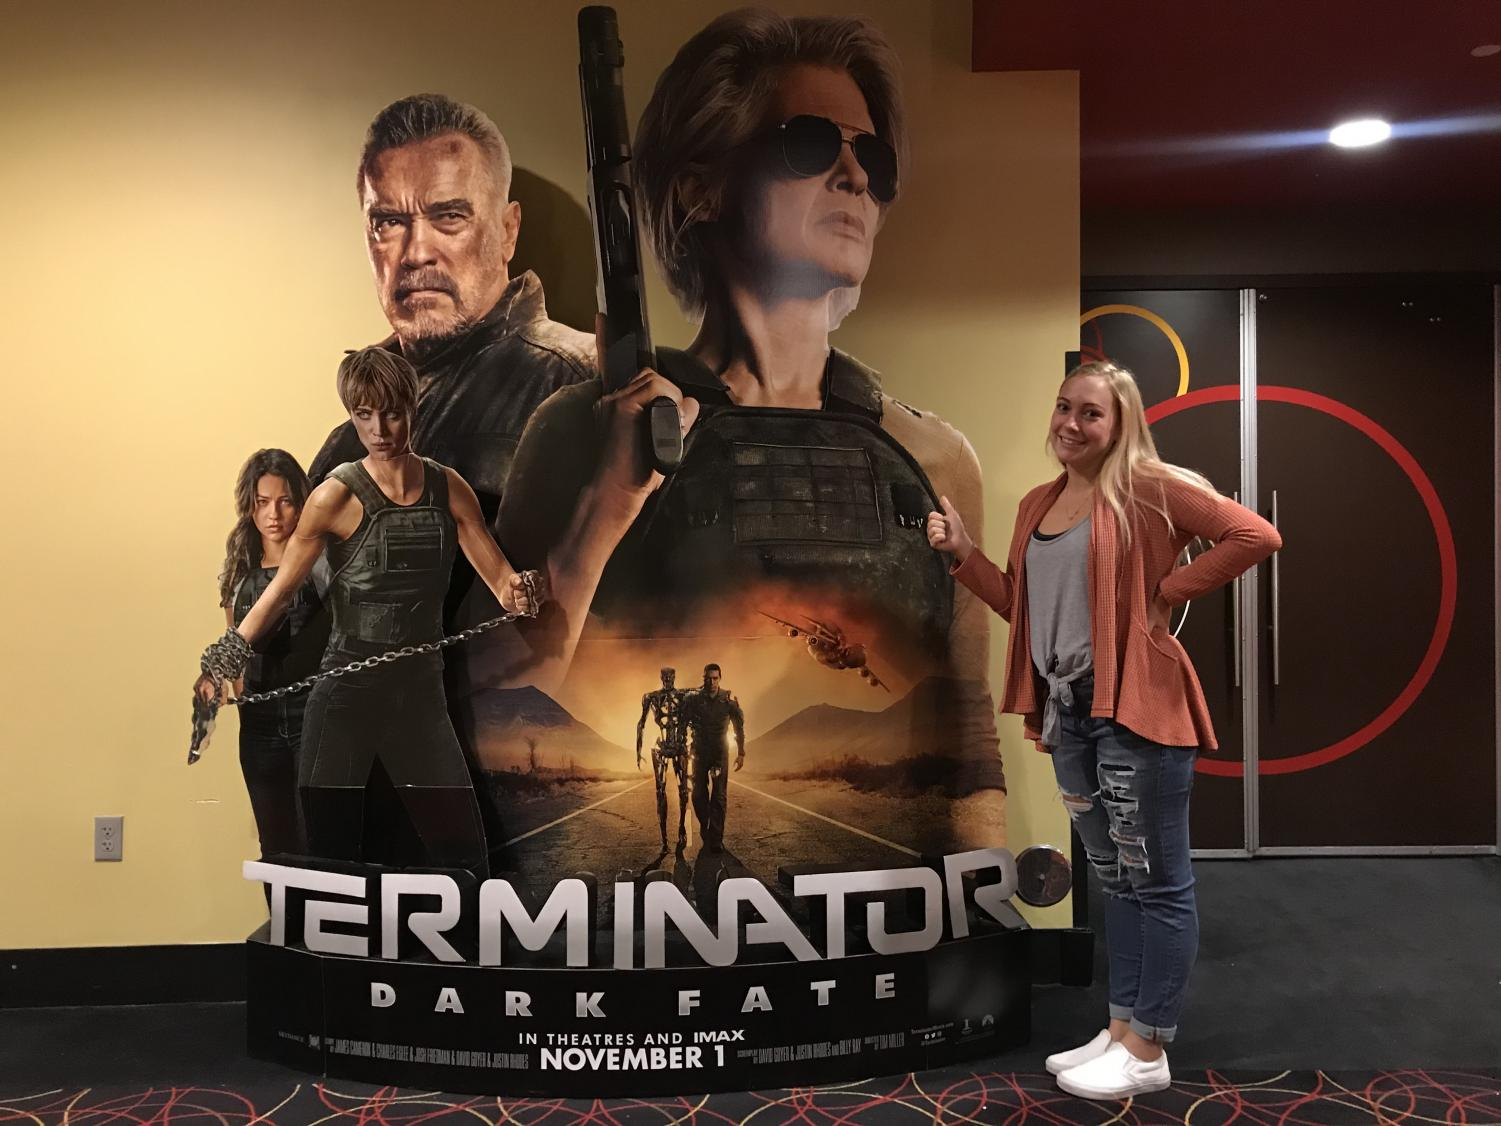 Grinning in front of a large Terminator poster, Managing Editor Elyse Sommer grins after watching the new Terminator: Dark Fate movie on November 3, the day after the newest terminator film's debut.  The film, featuring Arnold Schwarzenegger and Linda Hamilton, is a textbook box office flop, grossing $123 million in its budget of $185-$195 million, even if viewers like Sommer enjoyed the movie for all the gory, gruesome ways it is exactly like its predecessors. Photo courtesy of Dan Sommer.